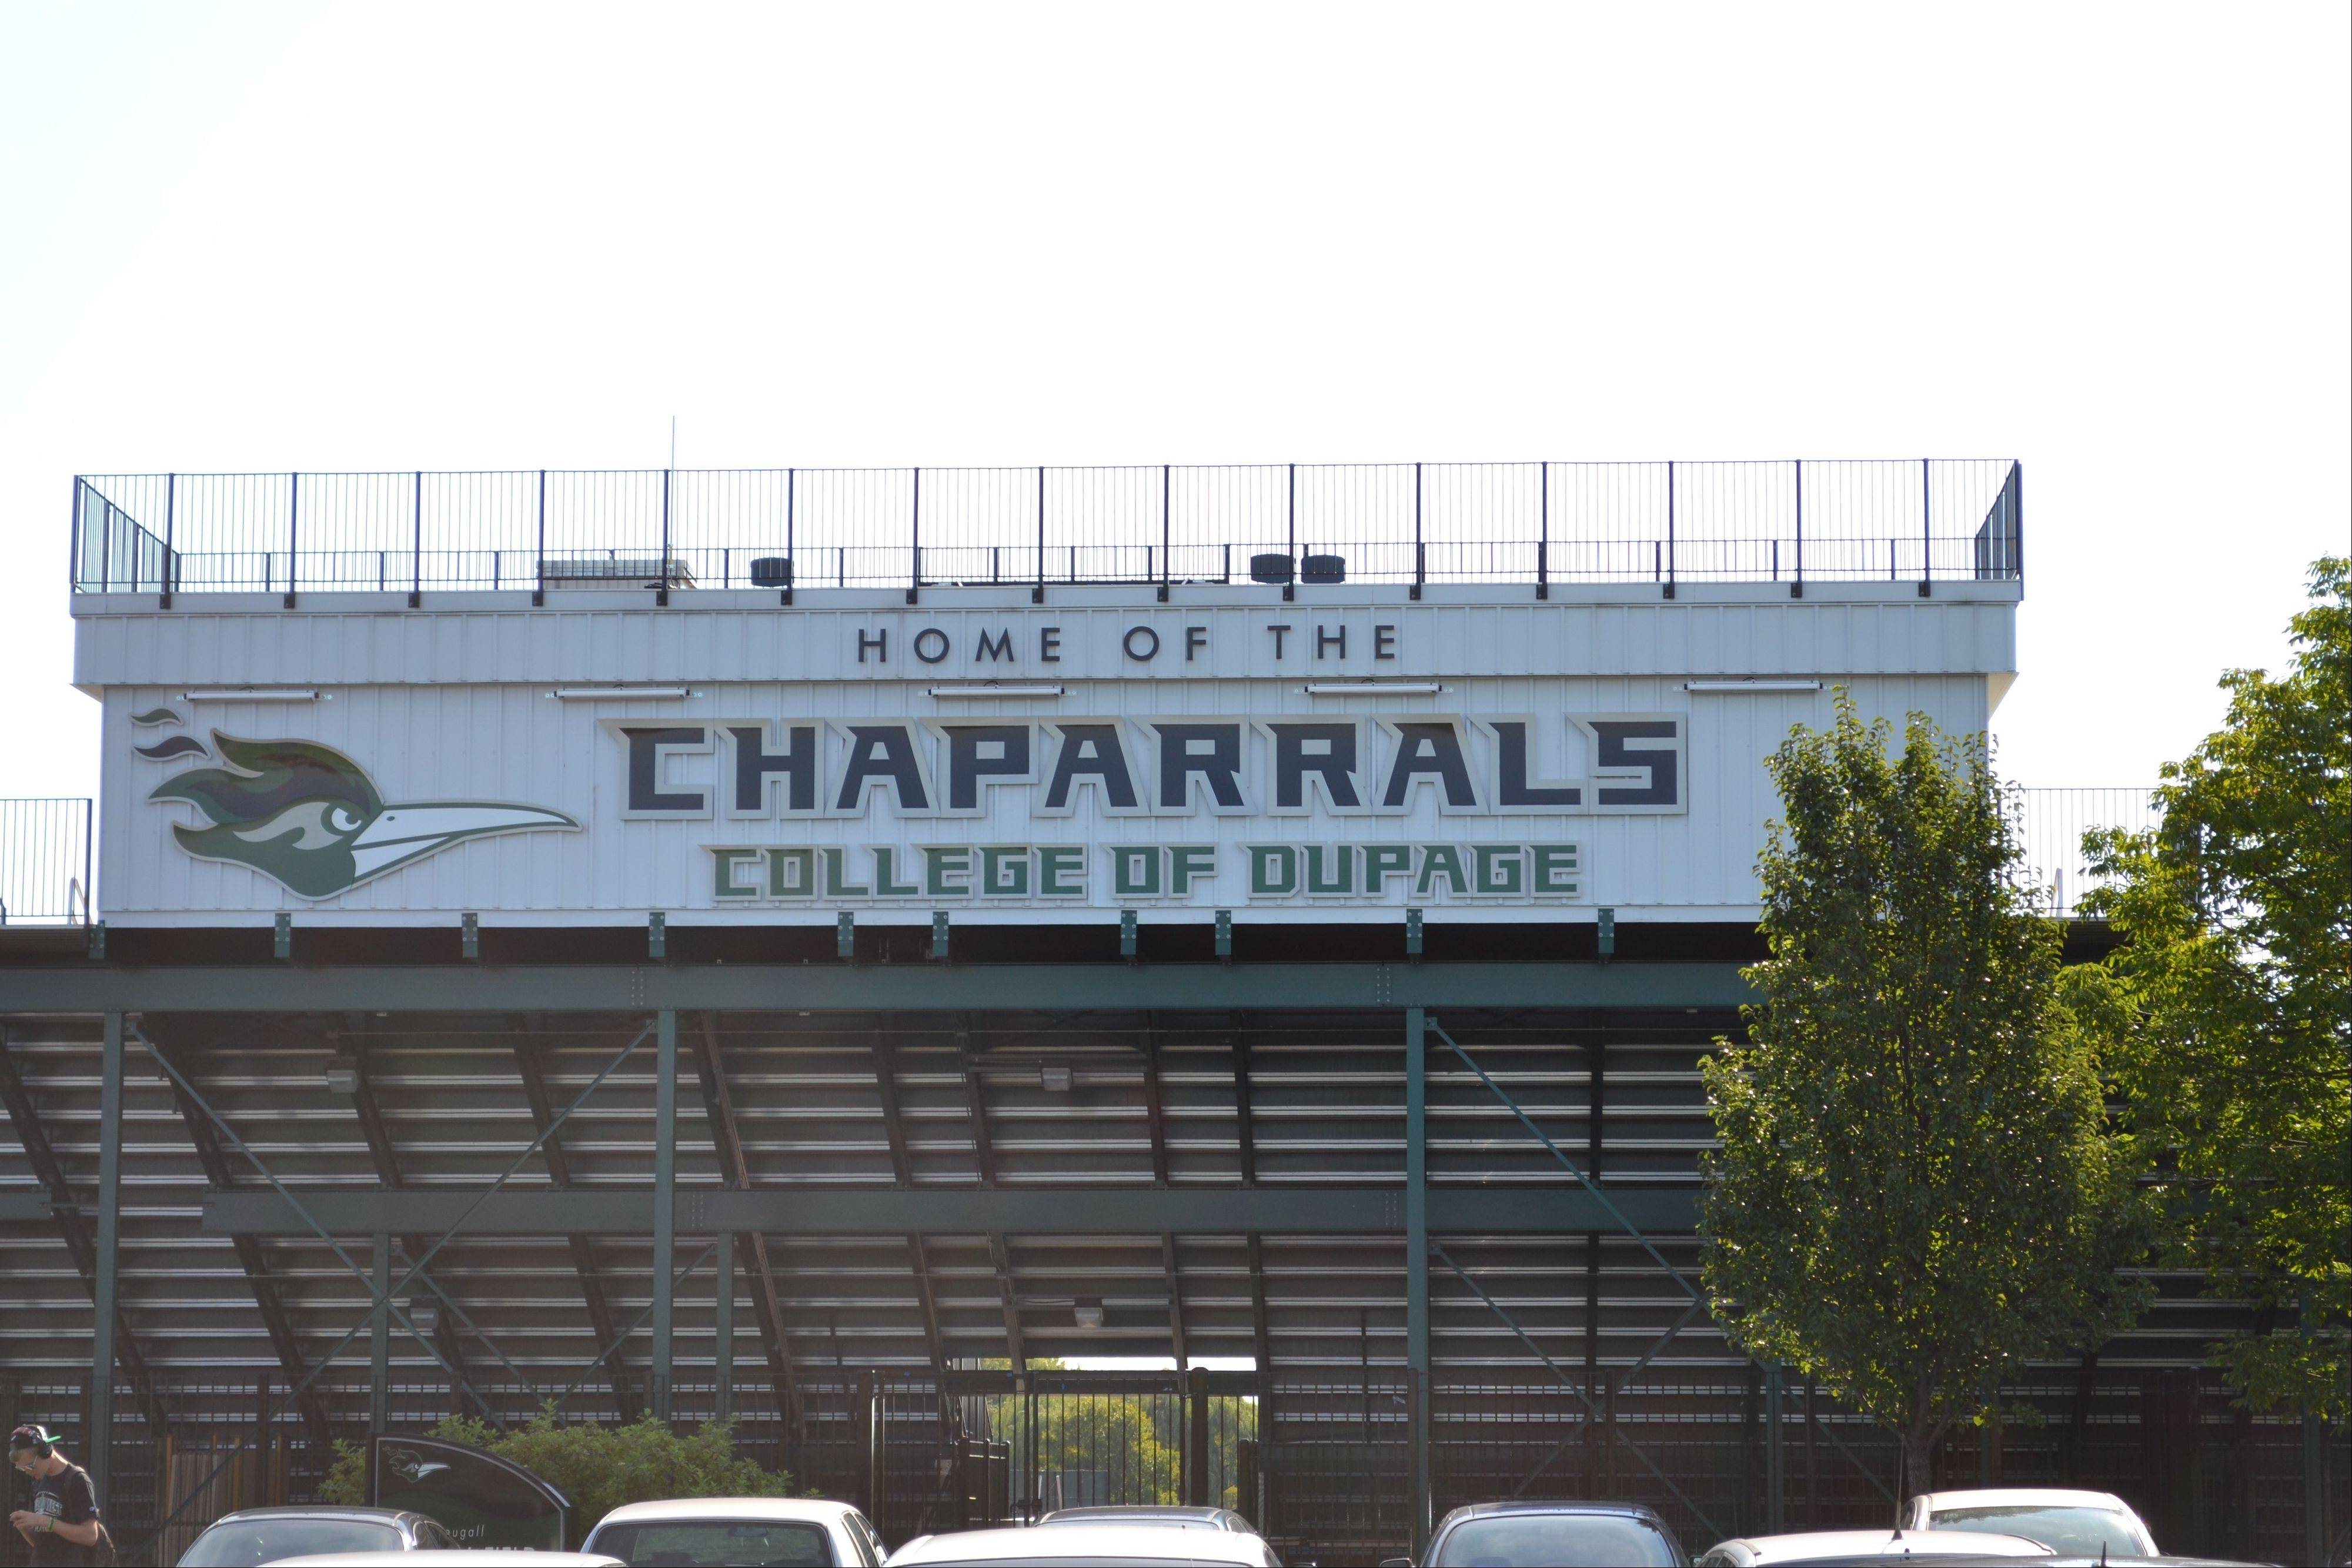 College of DuPage began branding and marketing the chaparral logo a few years ago at places such as the football stadium. Now, the college is getting an 8-foot statue of a chaparral to continue that effort.